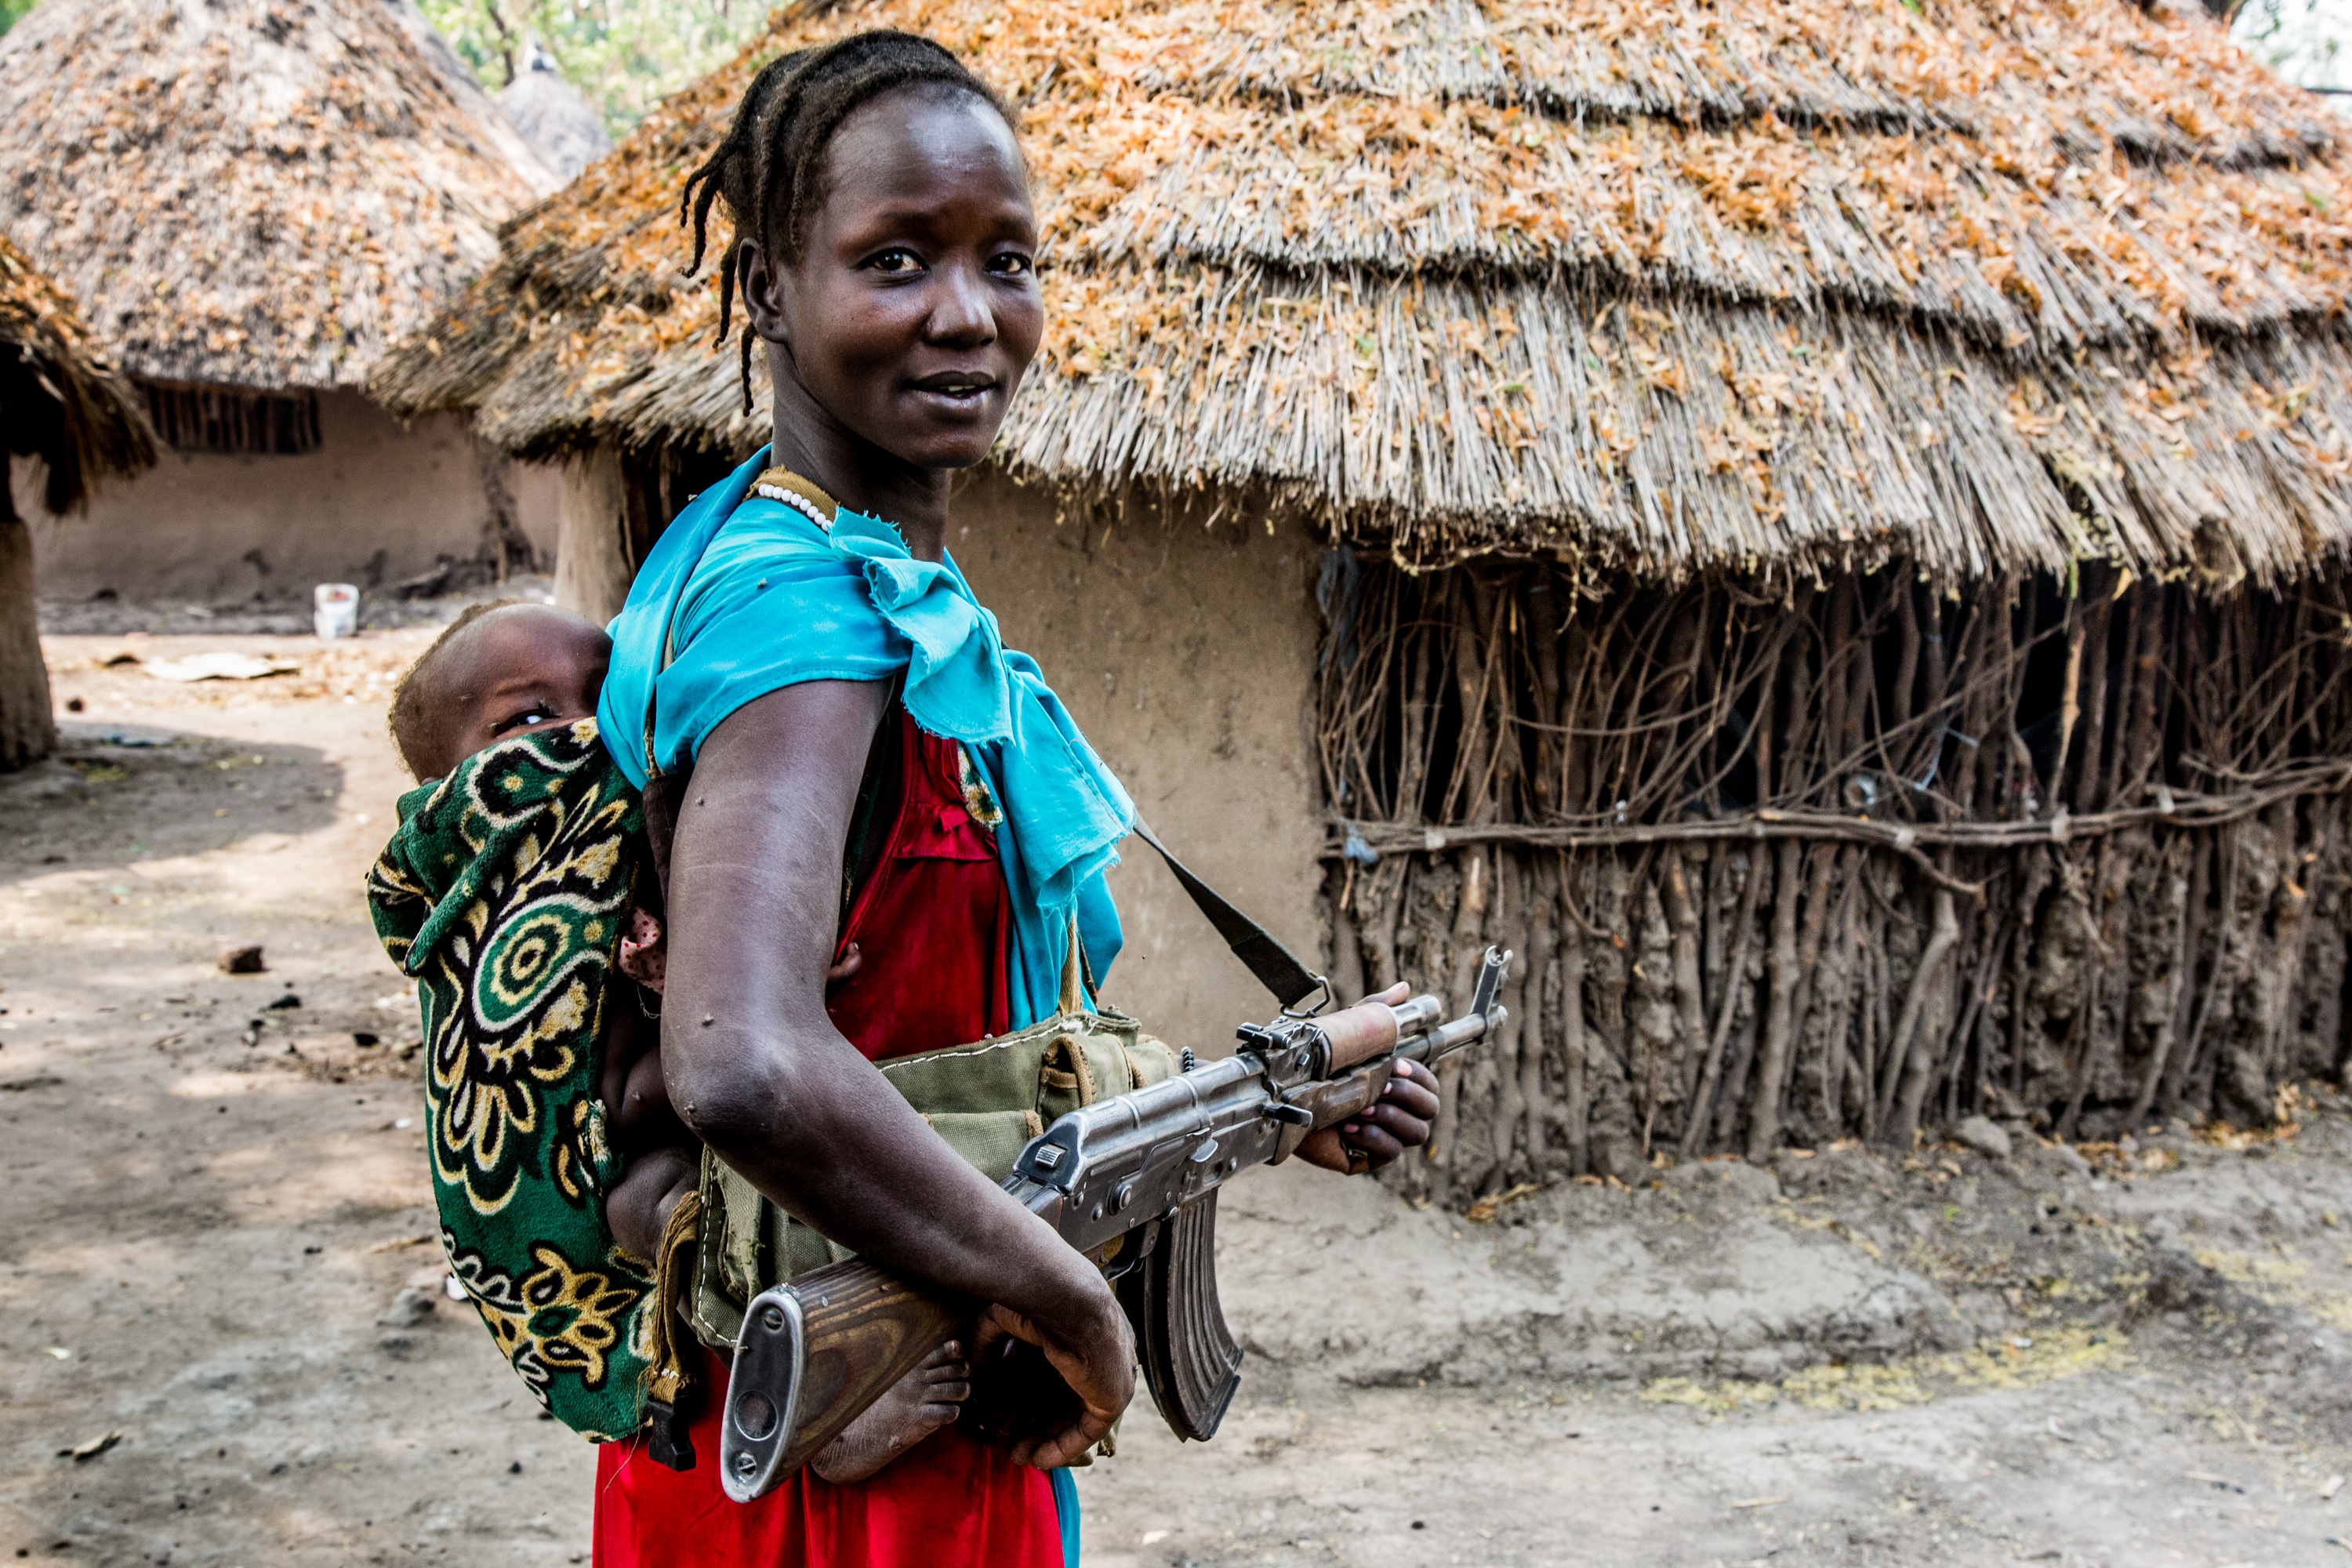 A woman poses with her weapon at a rebel camp in Akobo, S Sudan